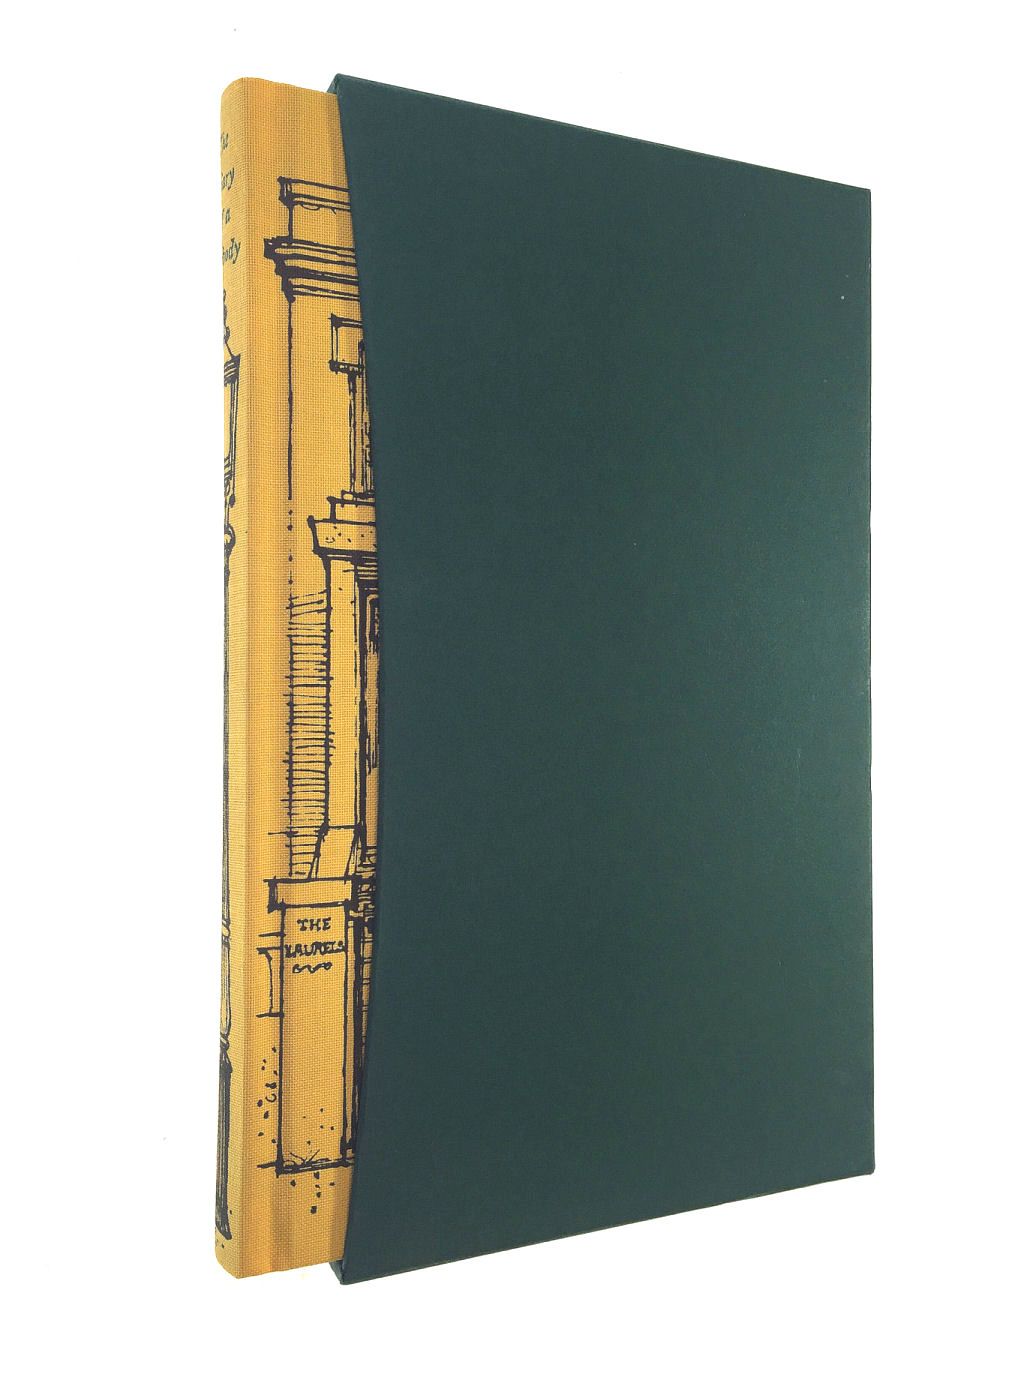 Image for The Diary of a Nobody (Folio Edition in slipcase)